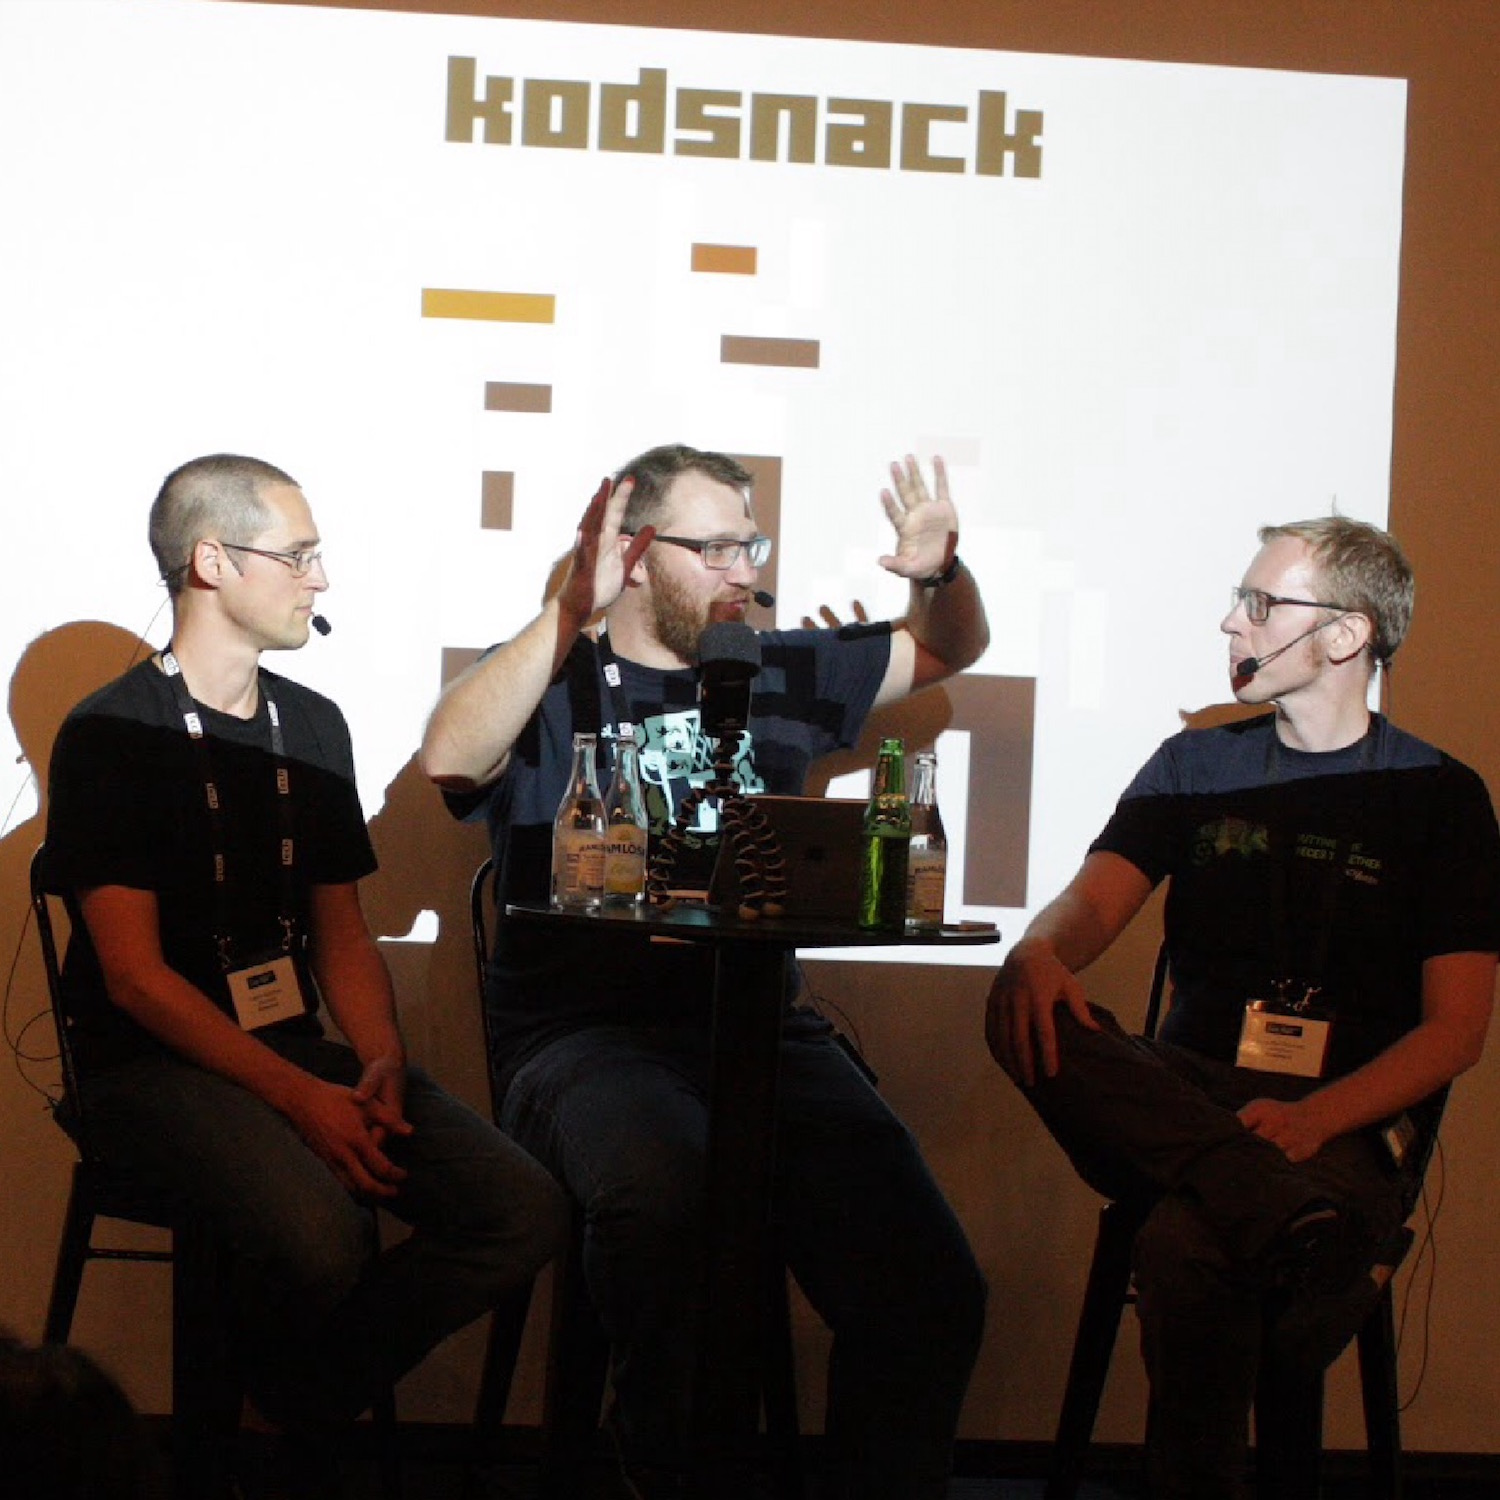 Kodsnack on stage